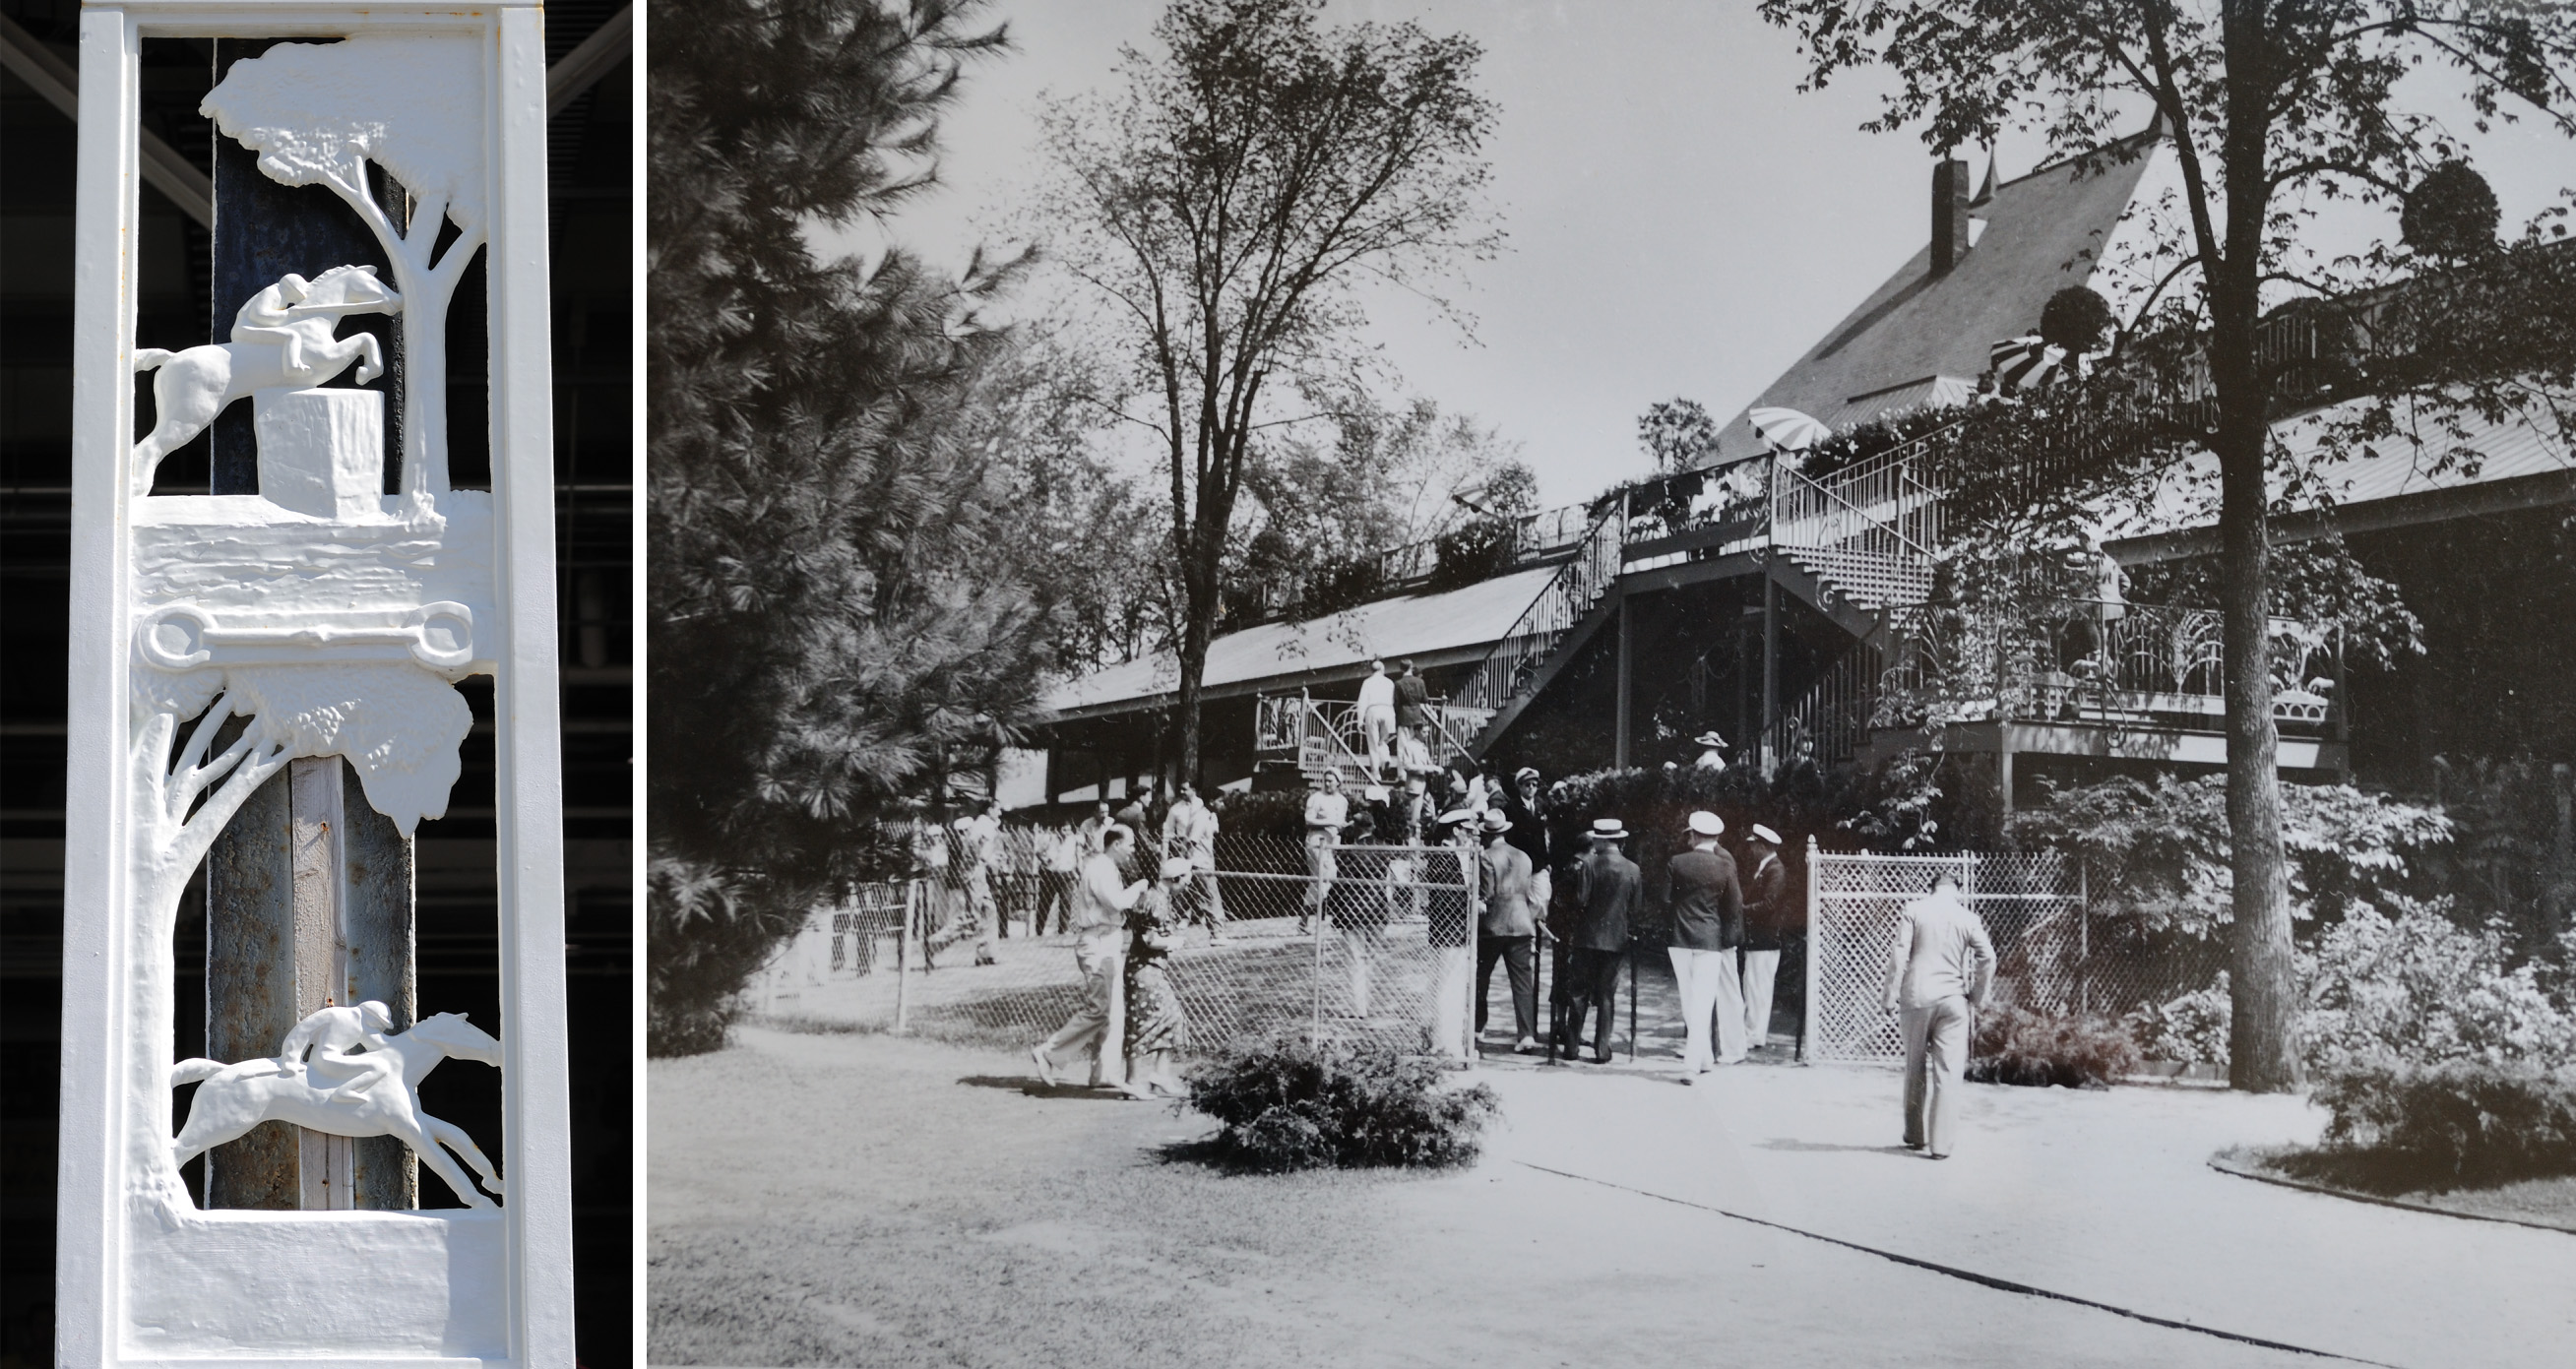 The betting ring, viewed from the back yard and the cast-iron decoration that it introduced. The image on the right is courtesy Saratoga Springs History Museum